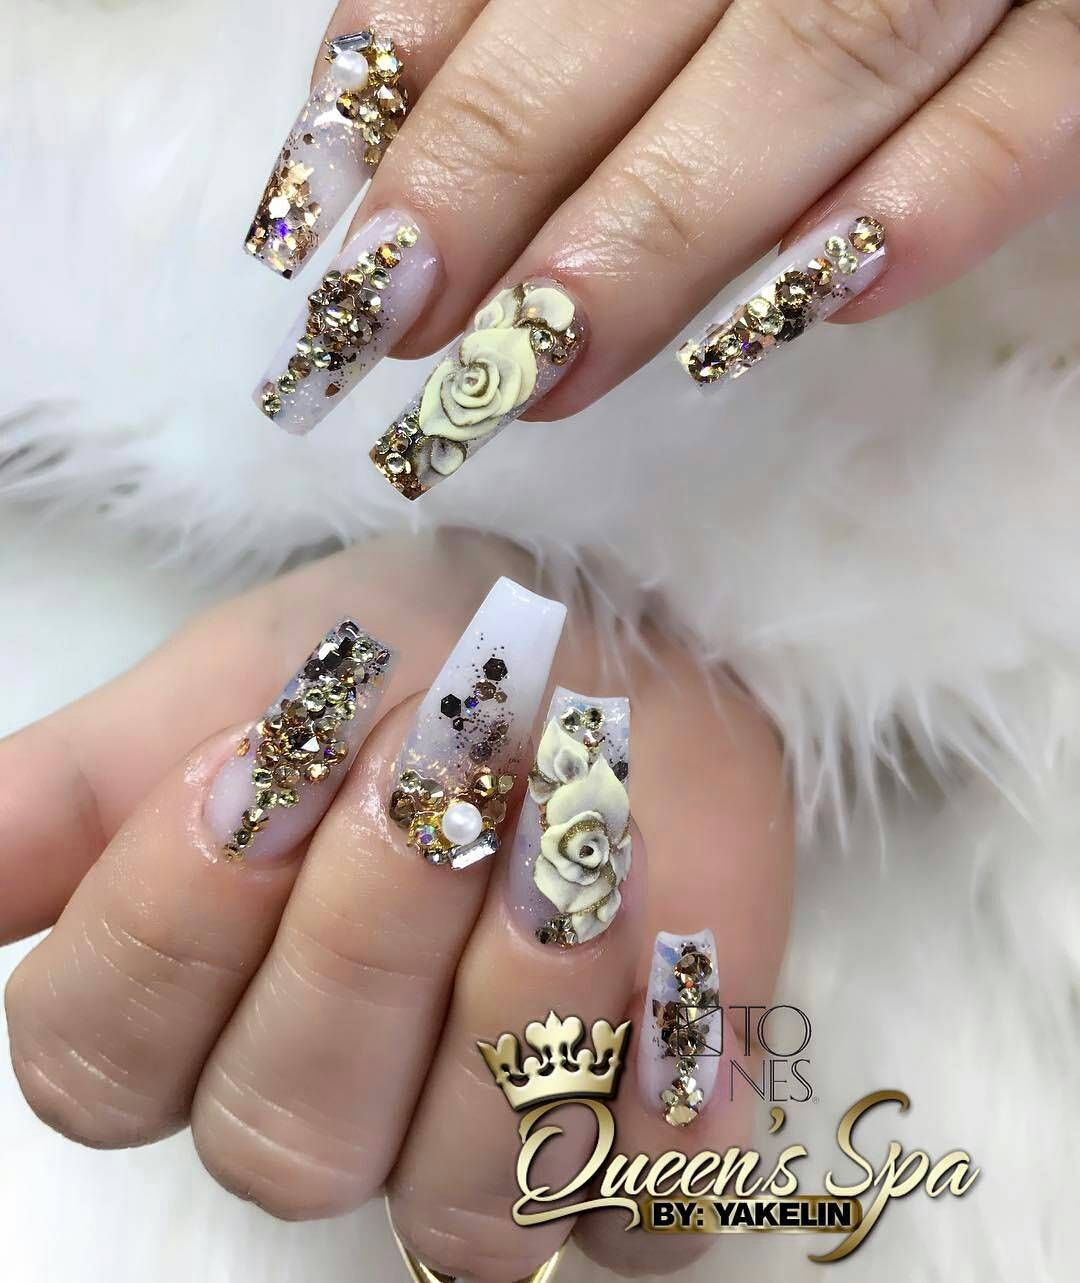 Amazing nail art made using tones products pro nails pinterest amazing nail art made using tones products prinsesfo Images